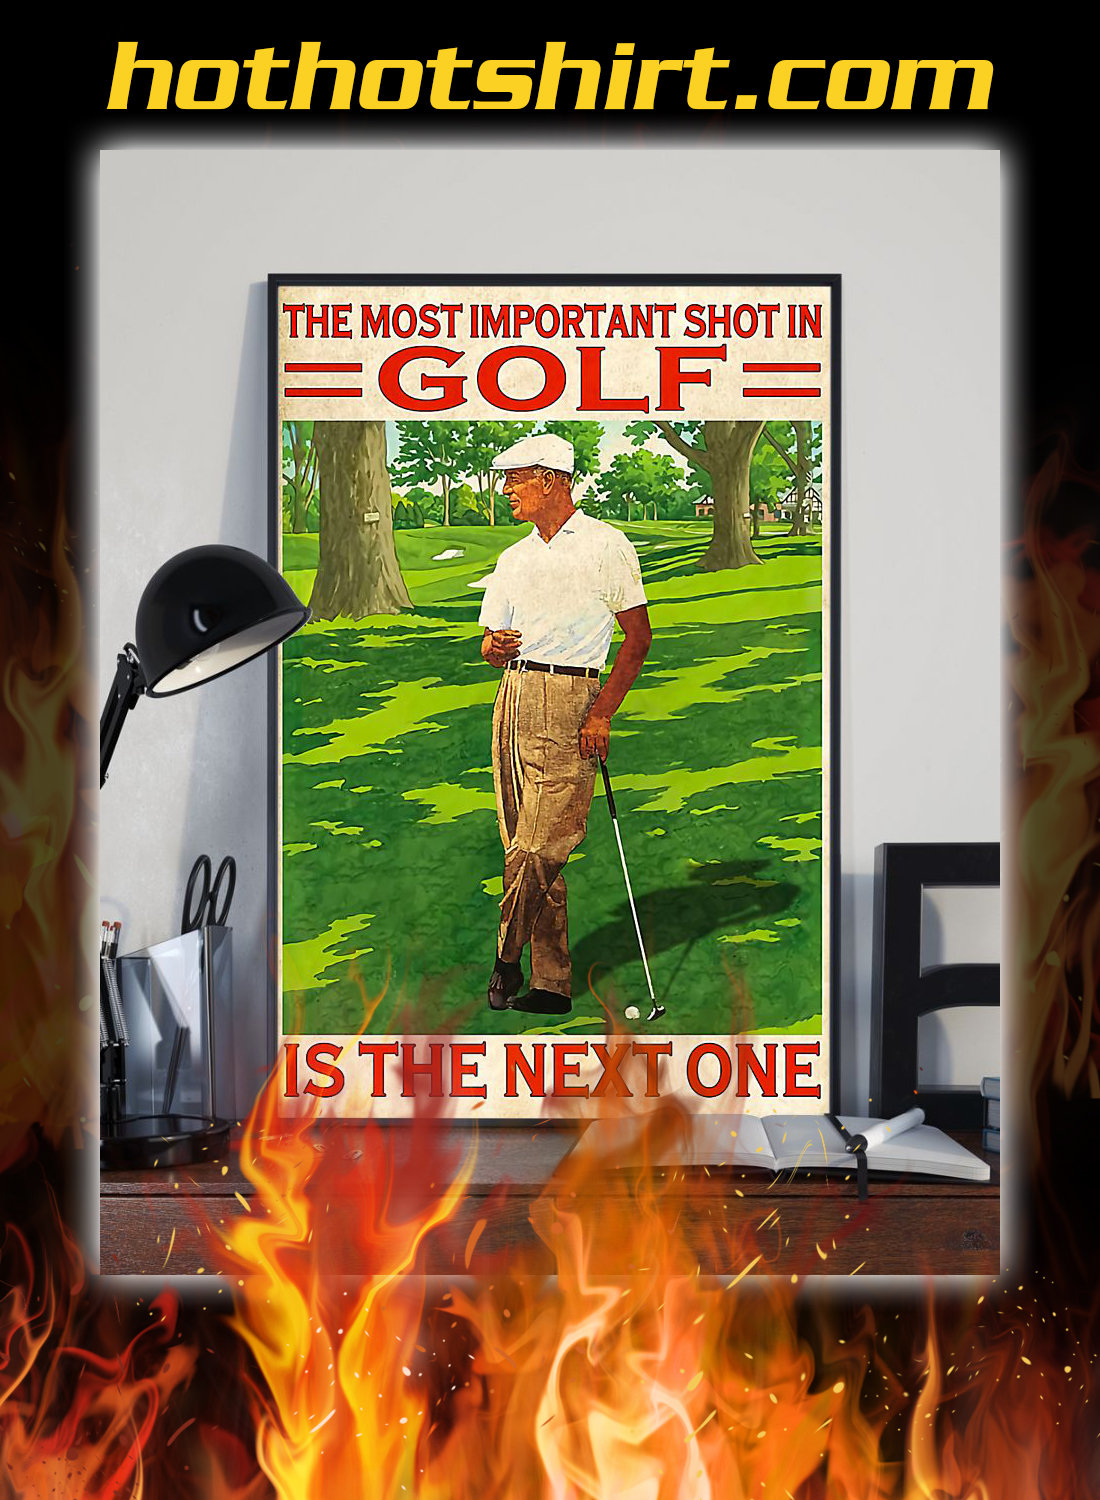 The most important shot in golf is the next one poster 2